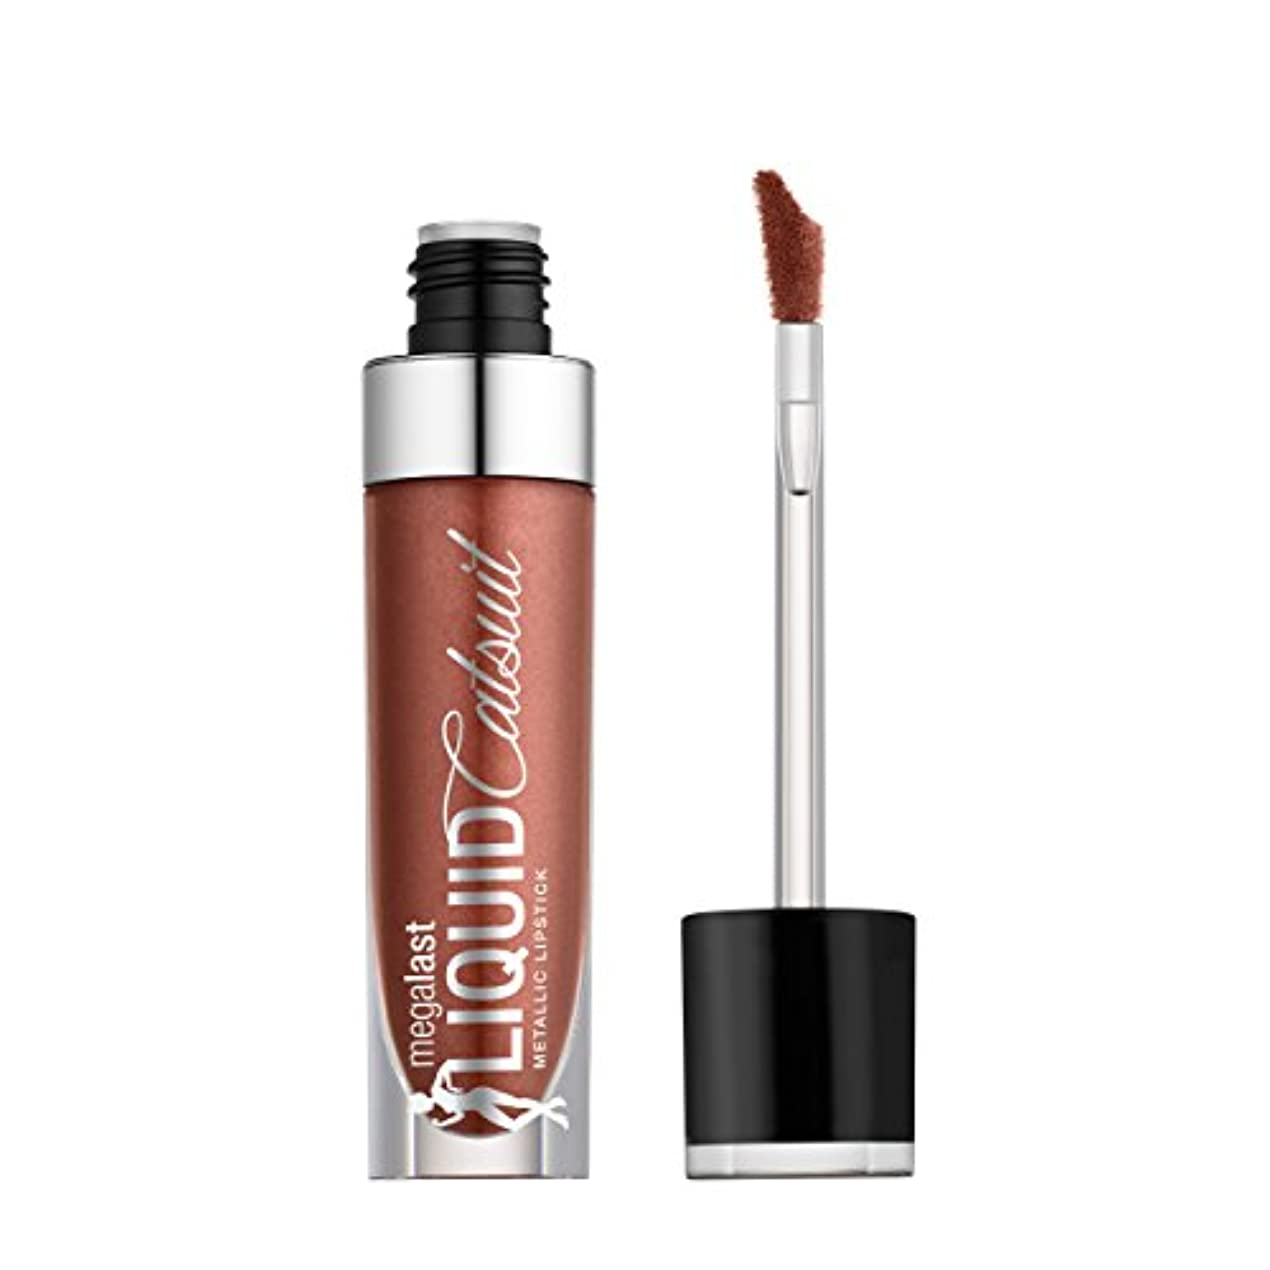 超える制限する子供時代WET N WILD Megalast Liquid Catsuit Metallic Lipstick - Ride On My Copper (並行輸入品)